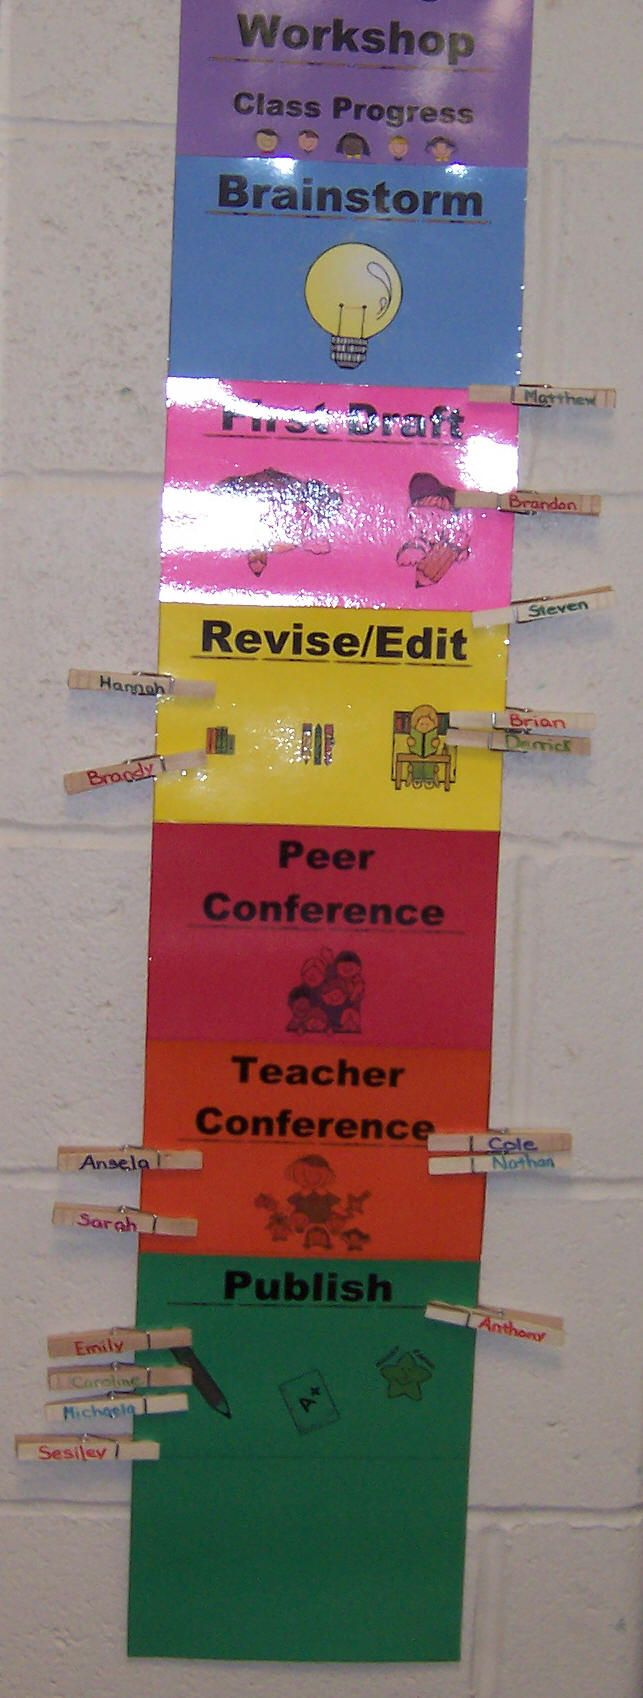 Writer's Workshop: Use this instead of a notebook, it allows the students and teacher a chance to see where they are into completing their work.